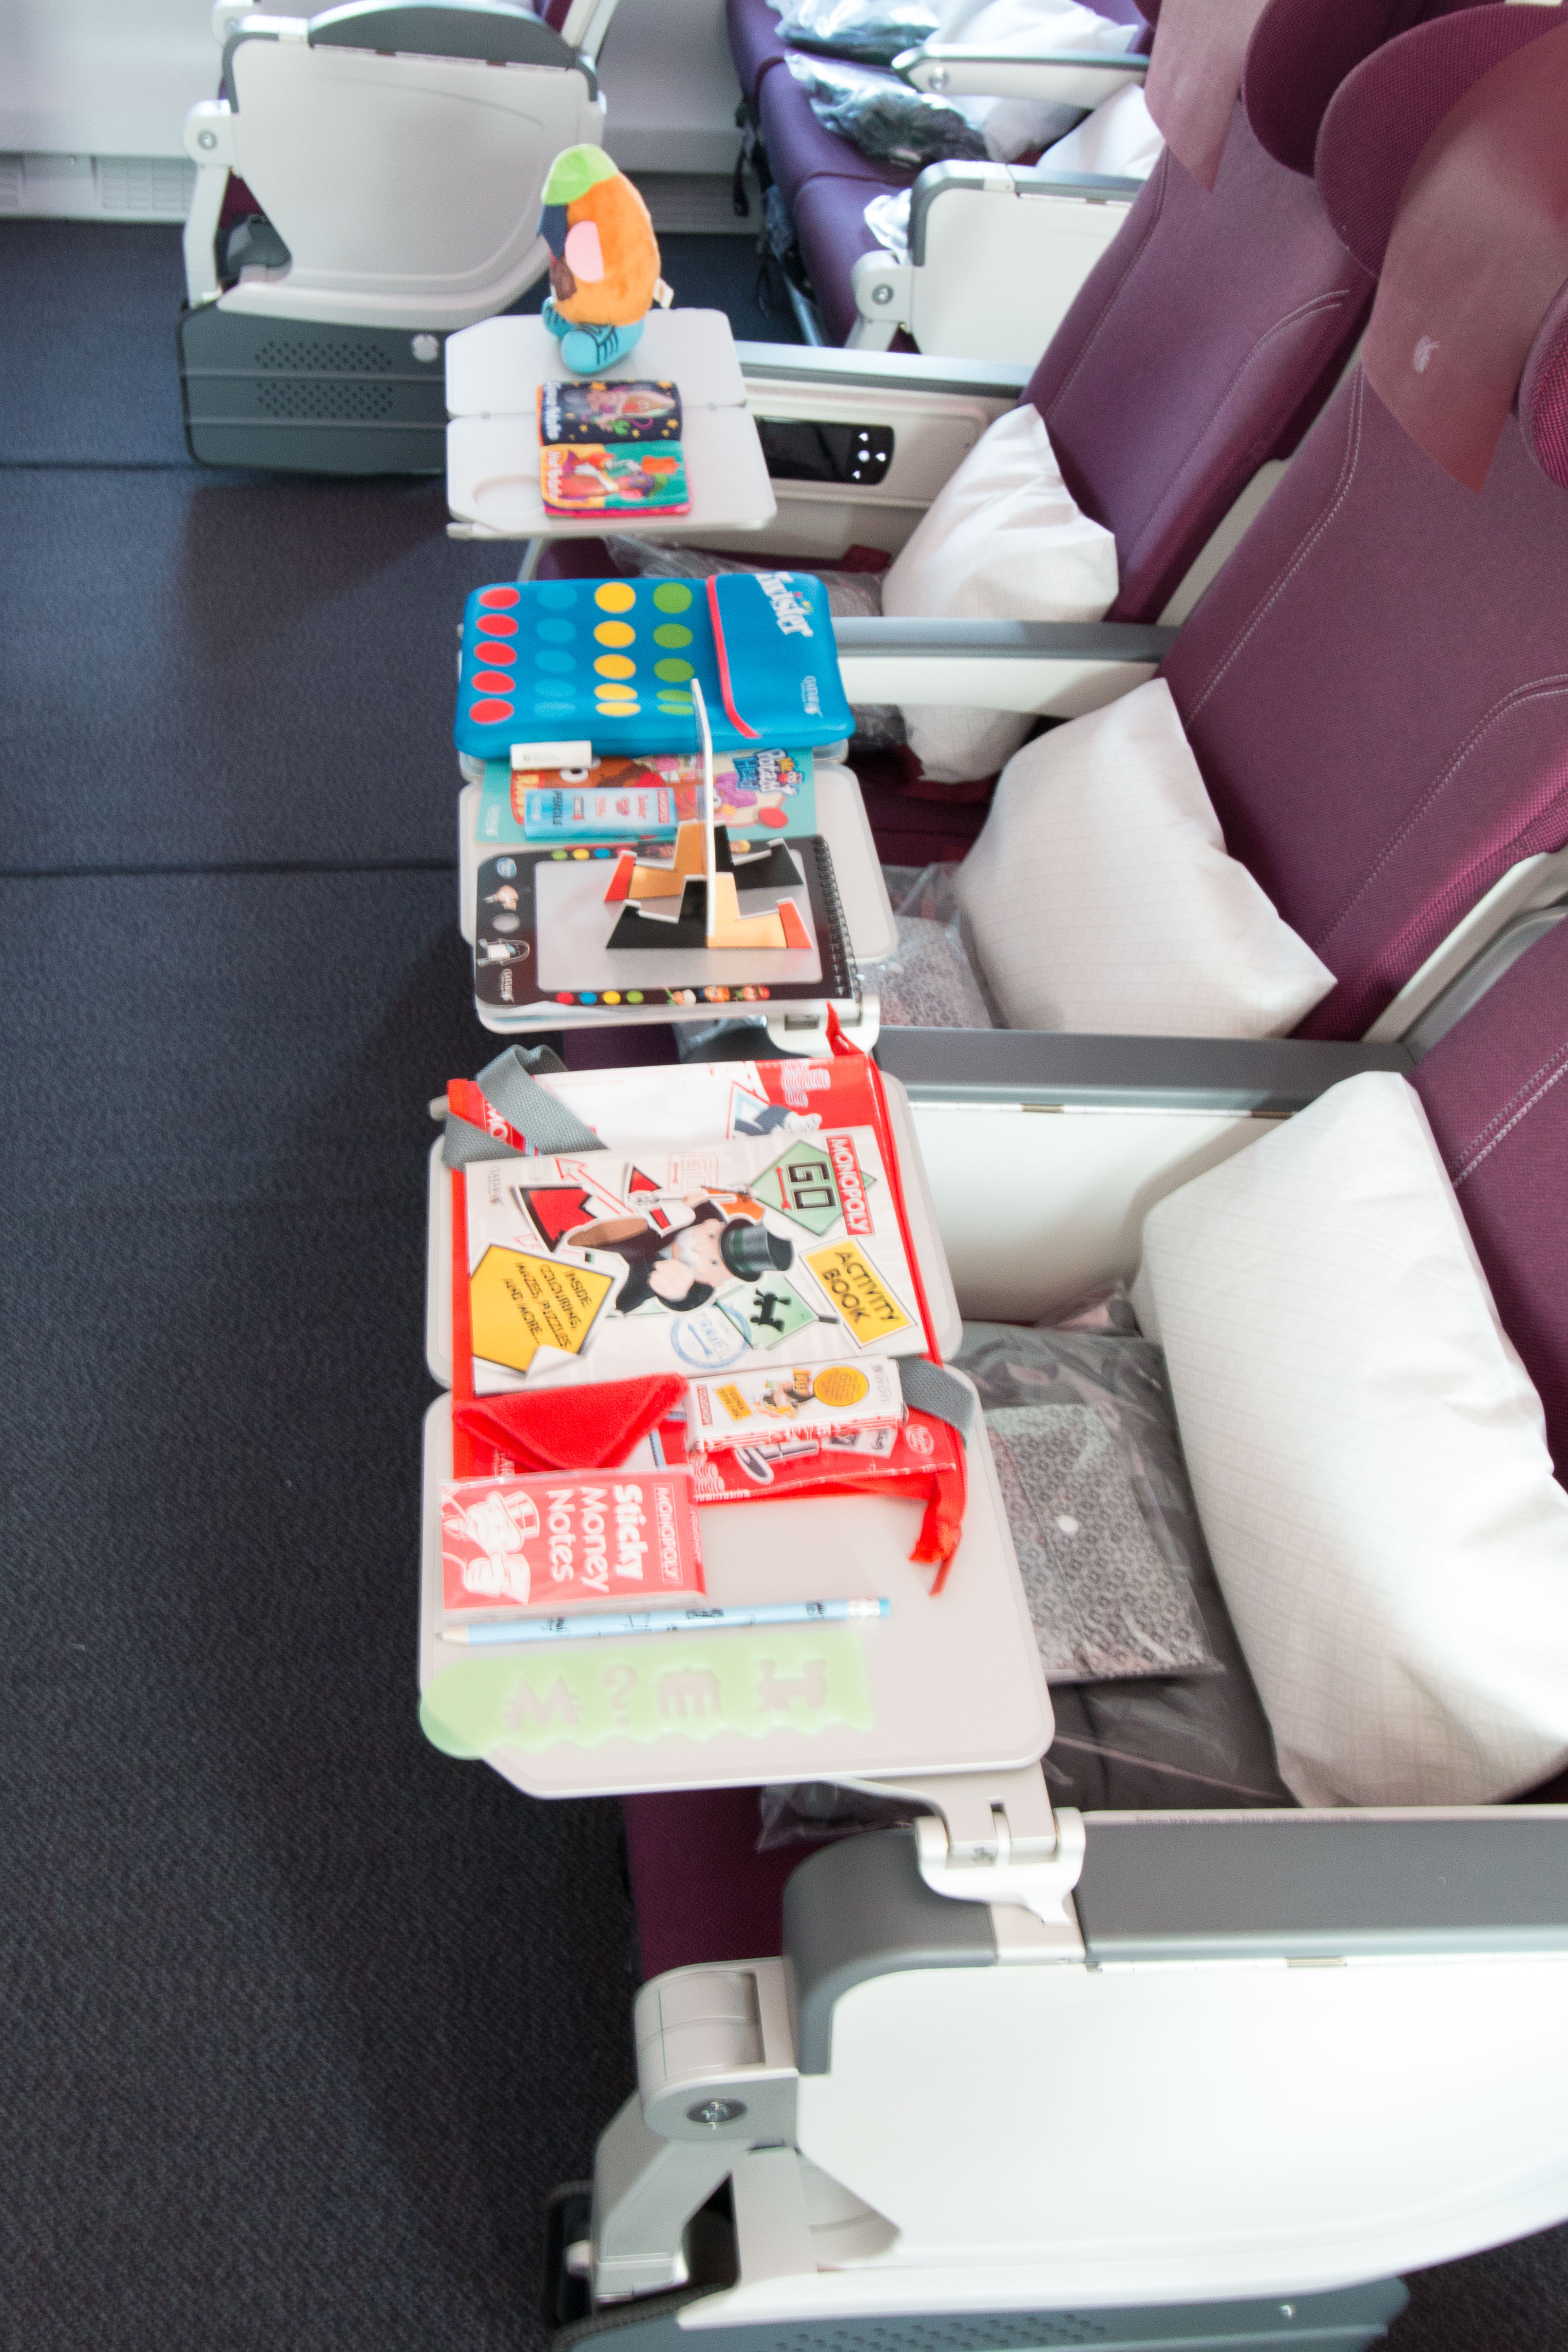 d0e1bd4926fd Qatar Airways has a variety of games and activities onboard to